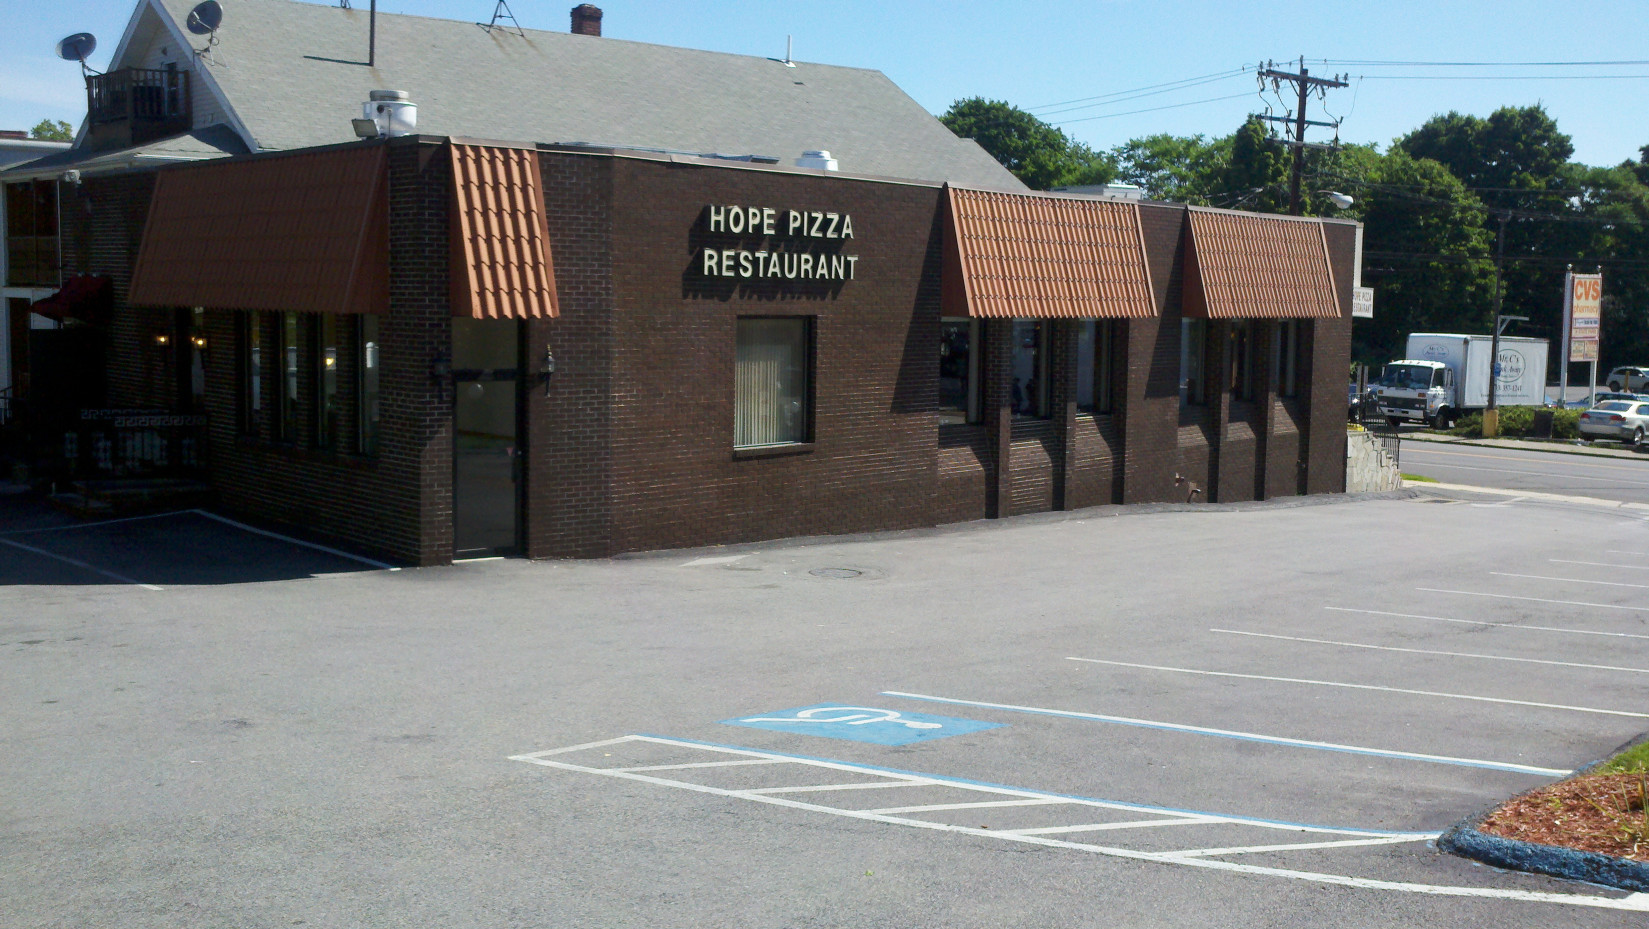 Everyone's favorite neighborhood restaurant that serves the best pizza in Stamford, CT